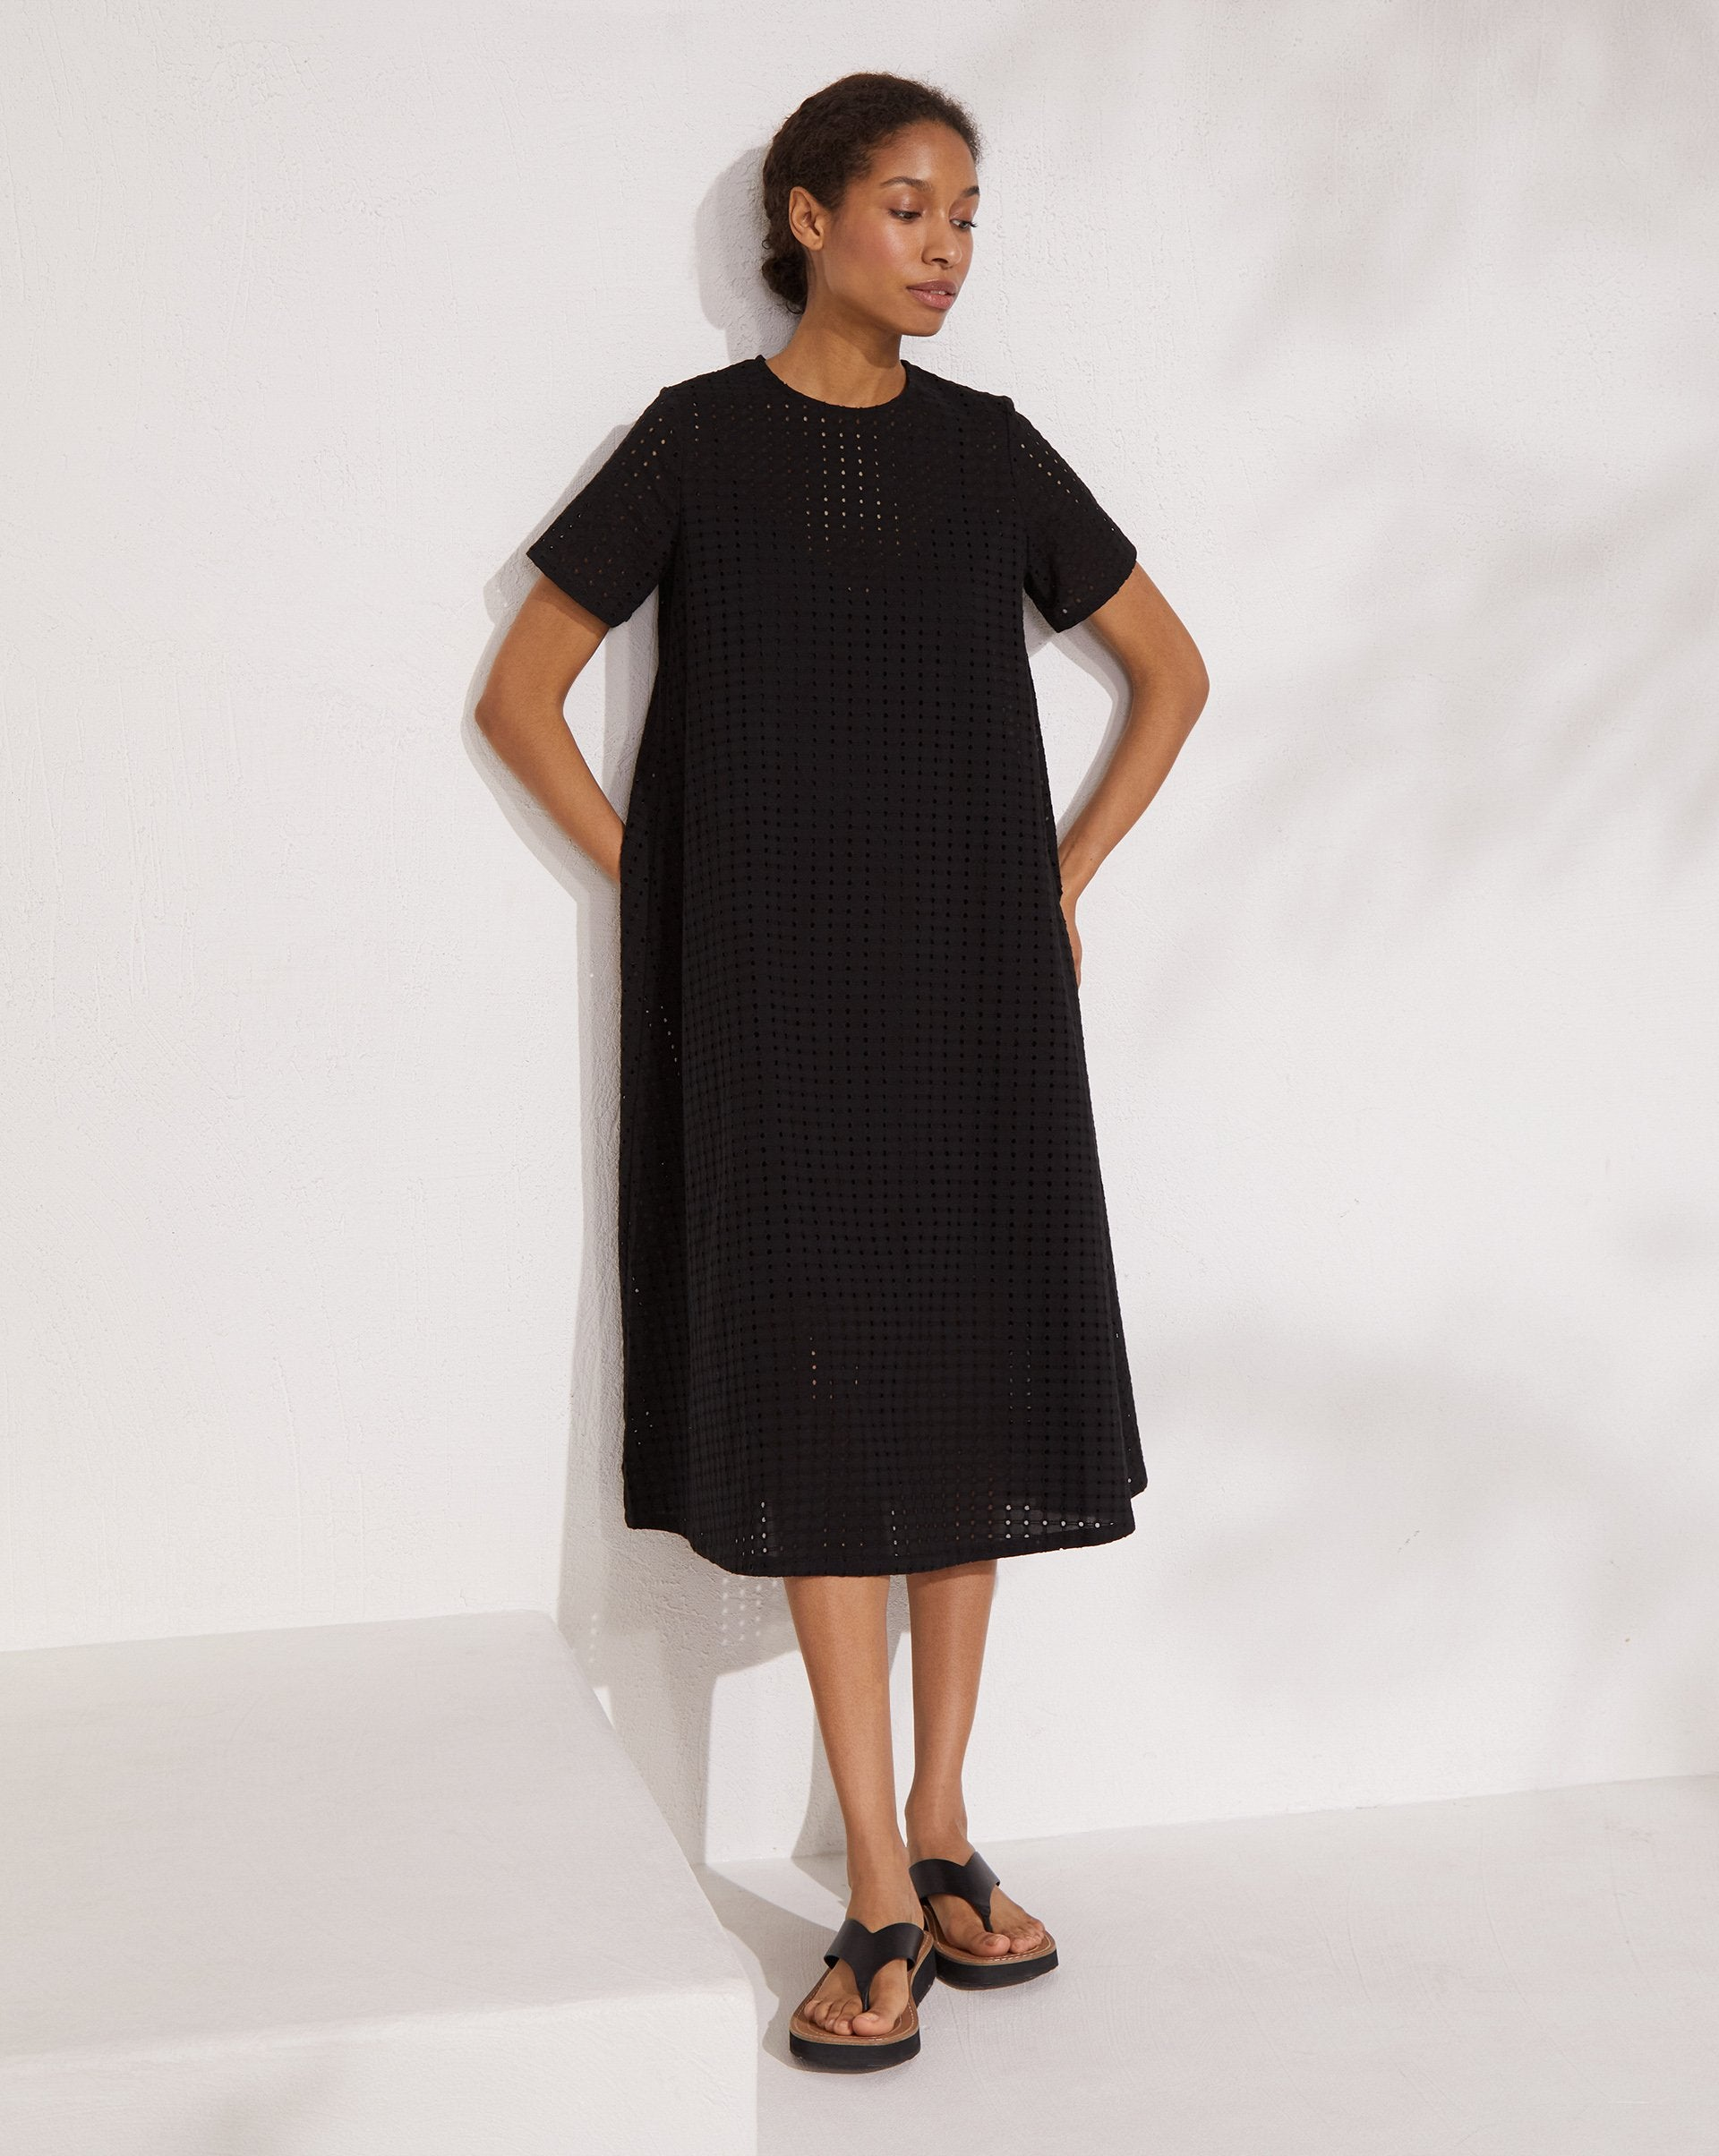 Broderie cotton midi dress - 12 STOREEZ